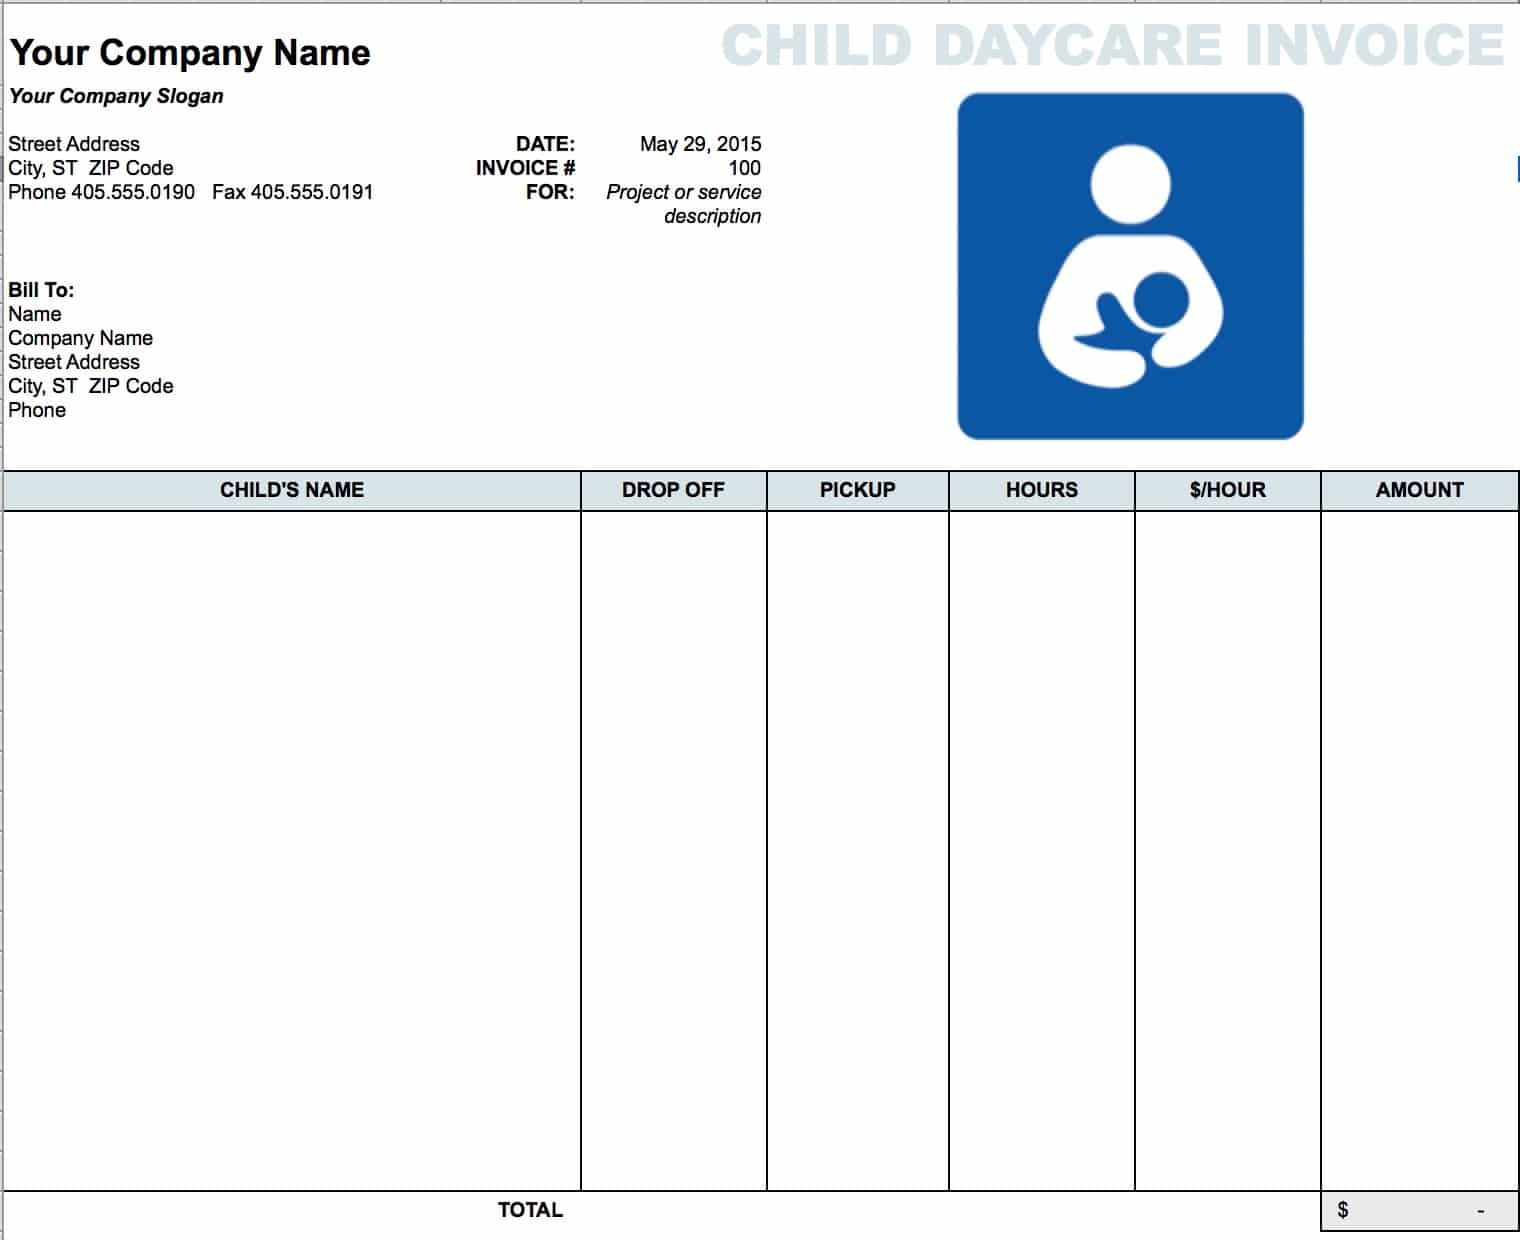 Free Daycare Child Invoice Template Excel PDF Word Doc - Invoice format in word doc for service business